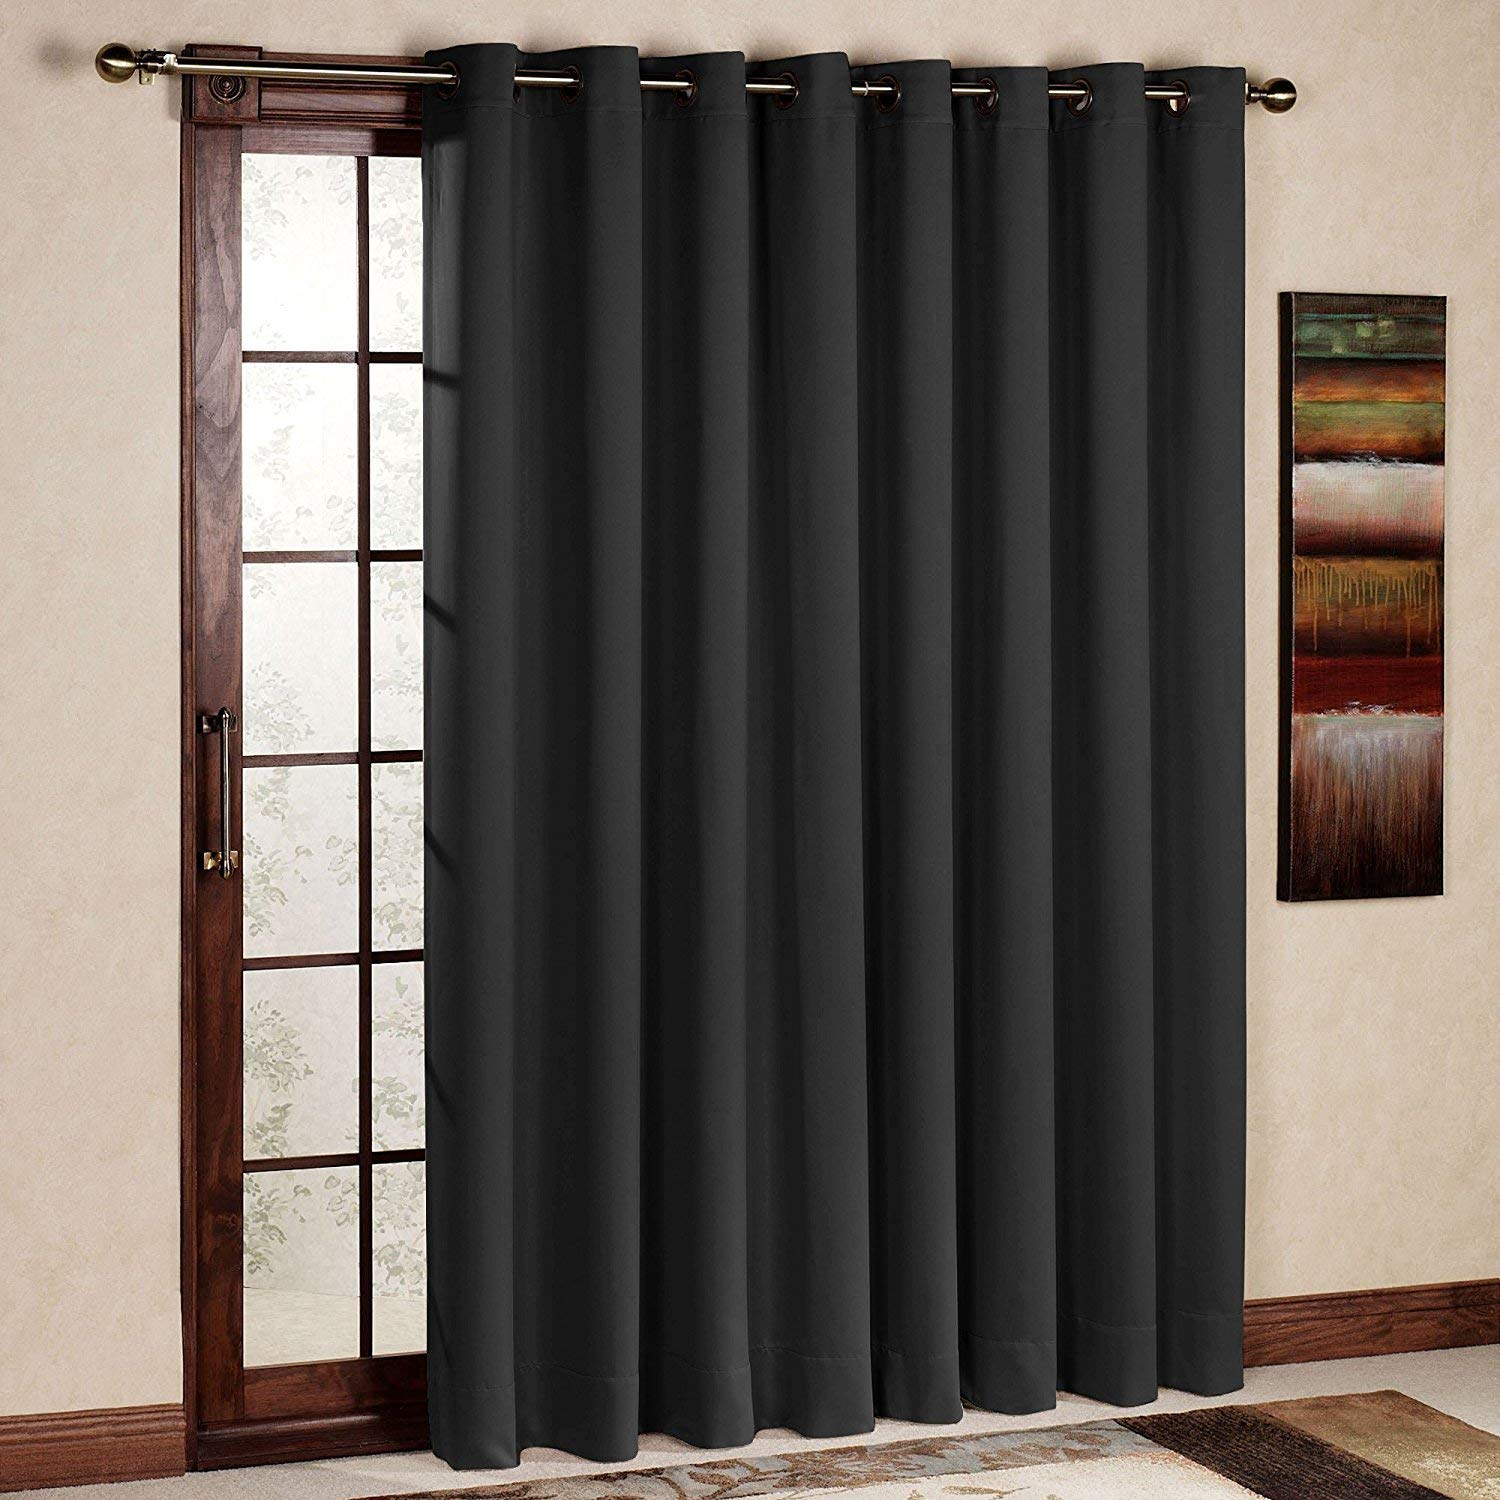 Rose Home Fashion Rhf Function Curtain Wide Thermal Blackout Patio